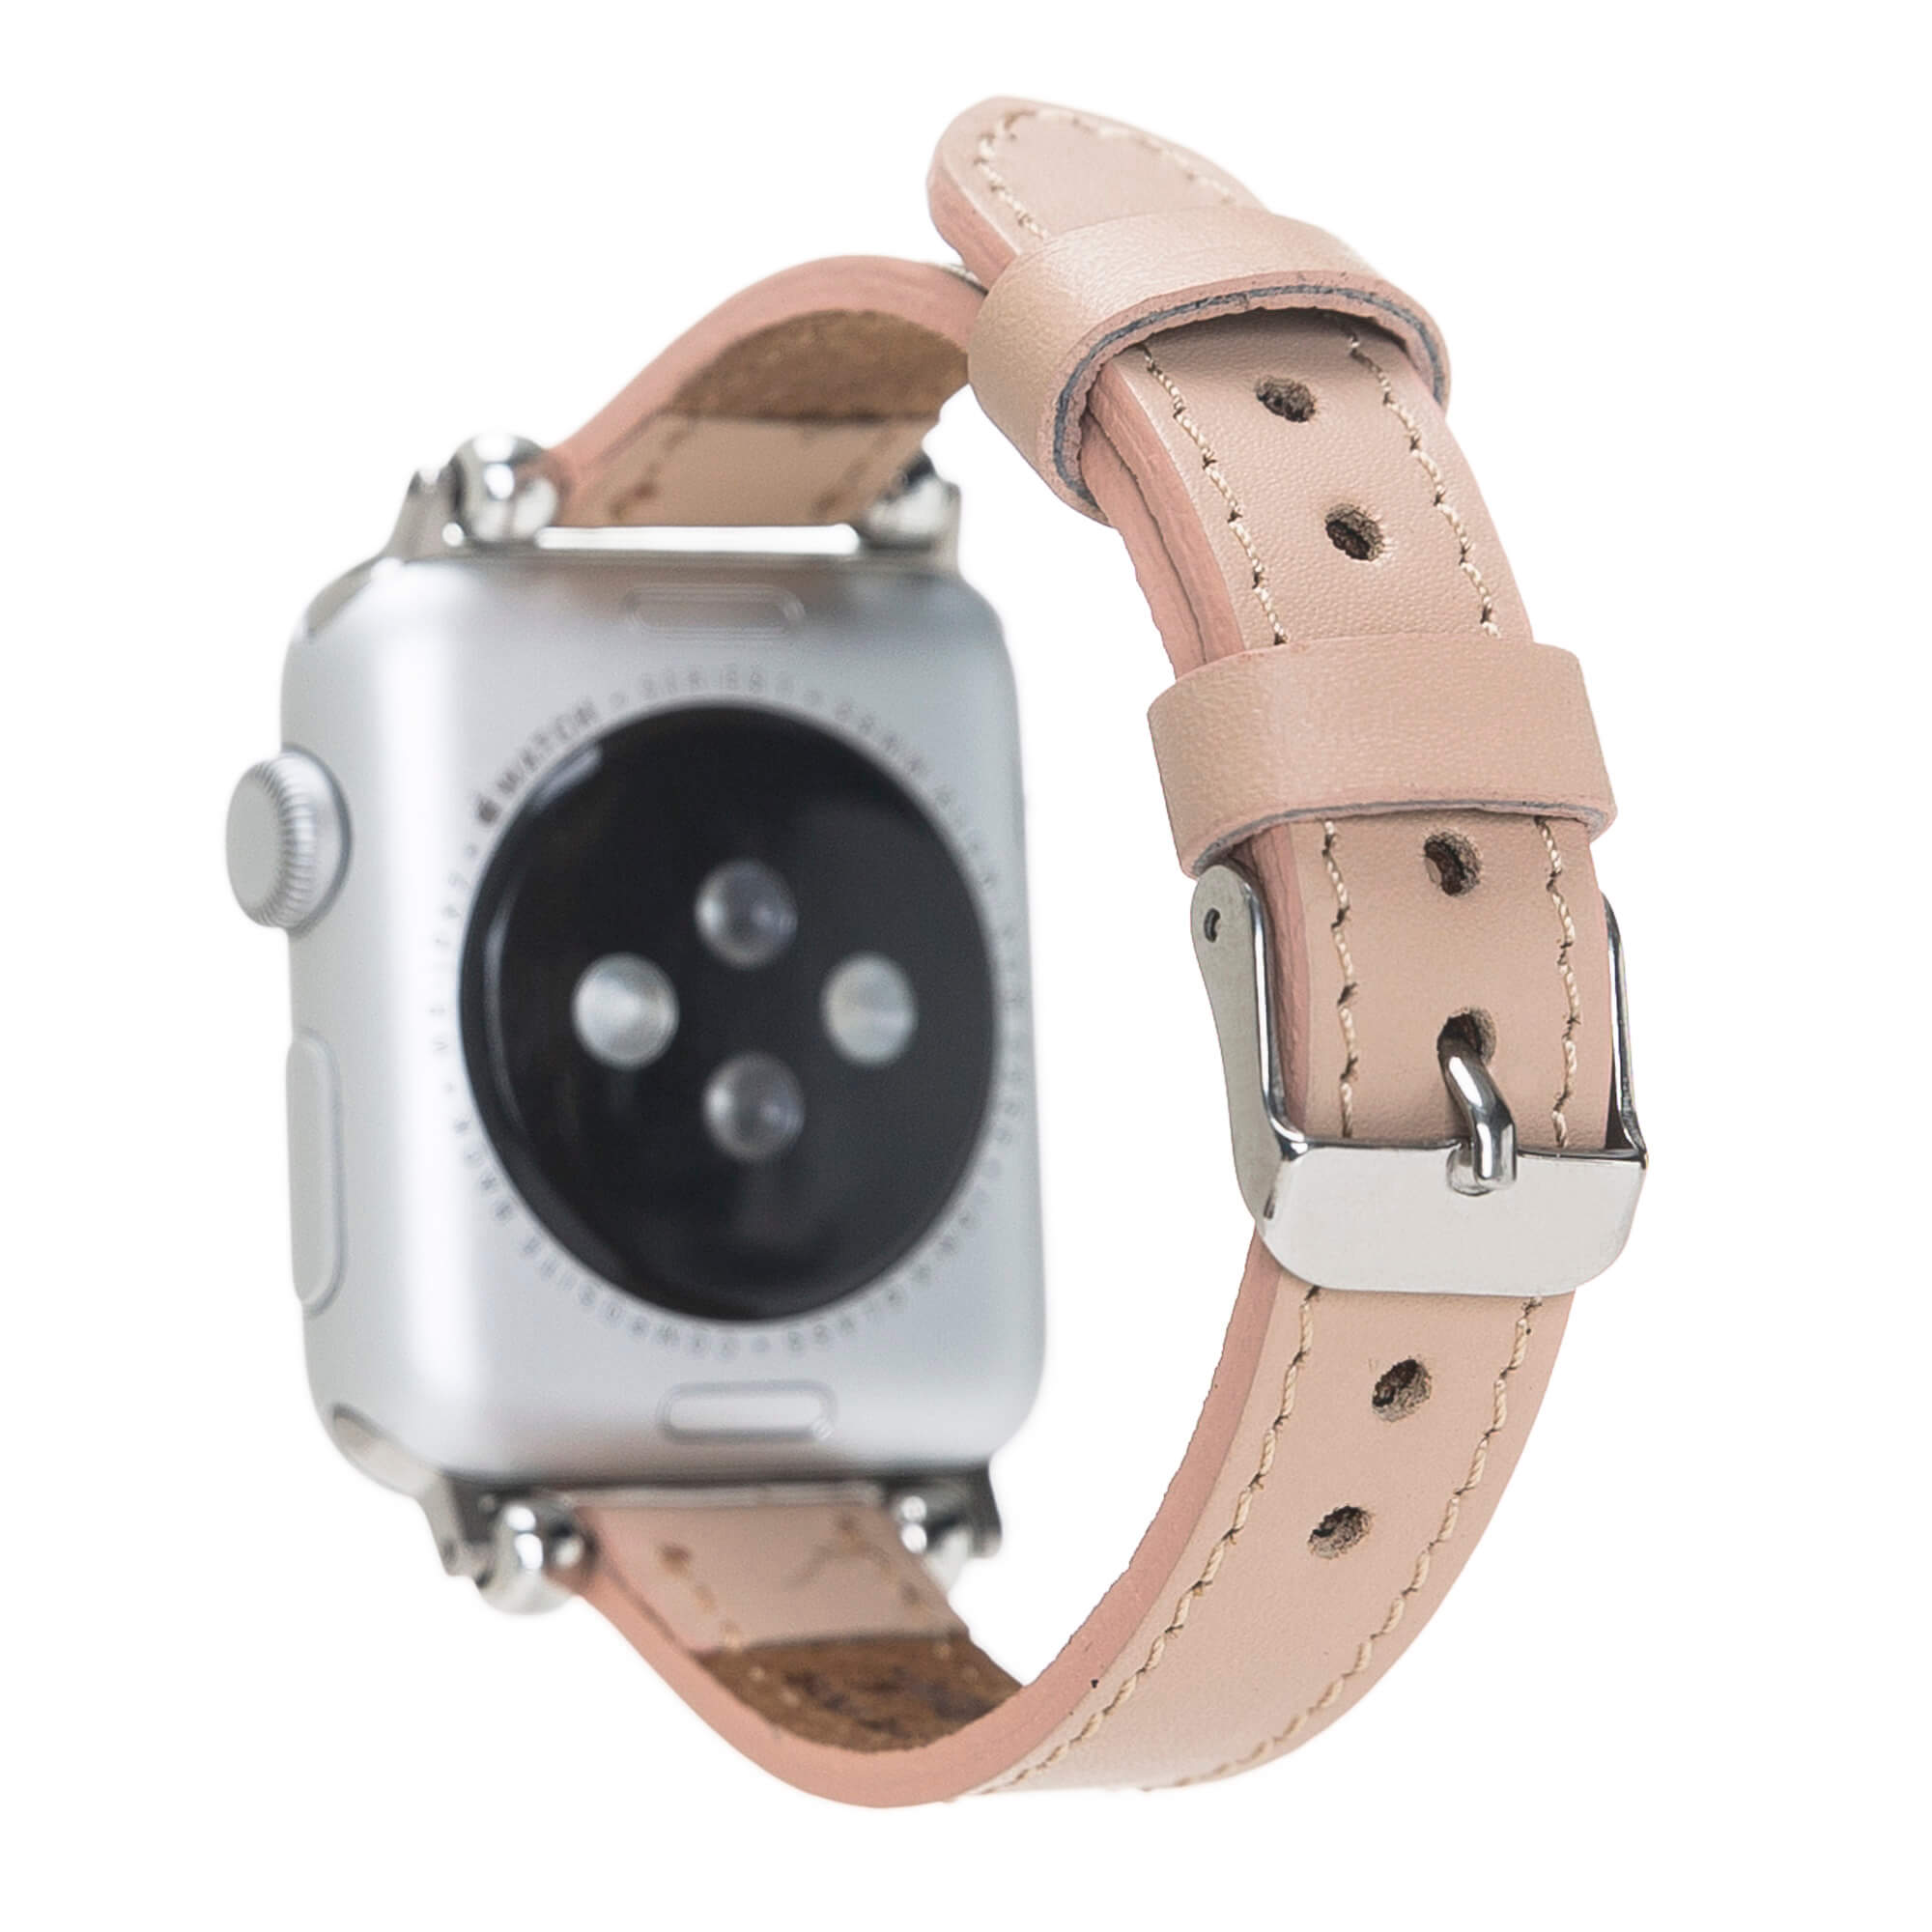 "Lederarmband ""Lady Slim"" für das Apple Watch Series 1-4 in 38/40mm Cognac Braun Burned"